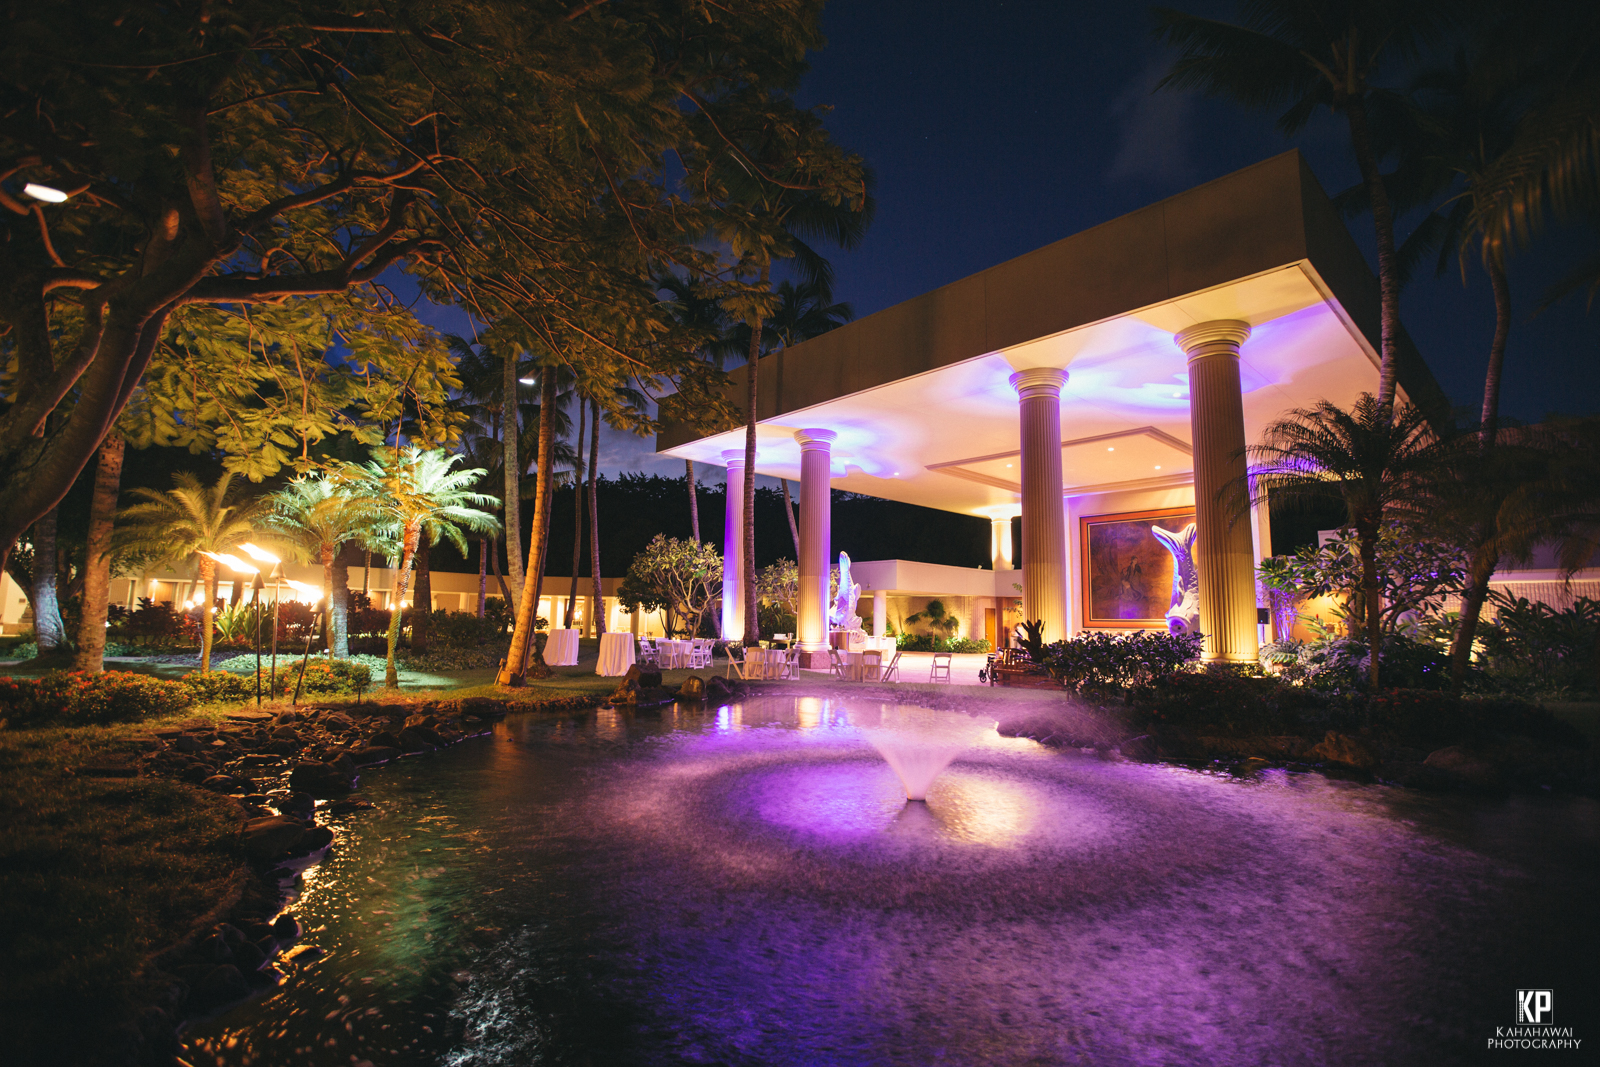 Lighting and scenery at the Kauai Marriott Resort